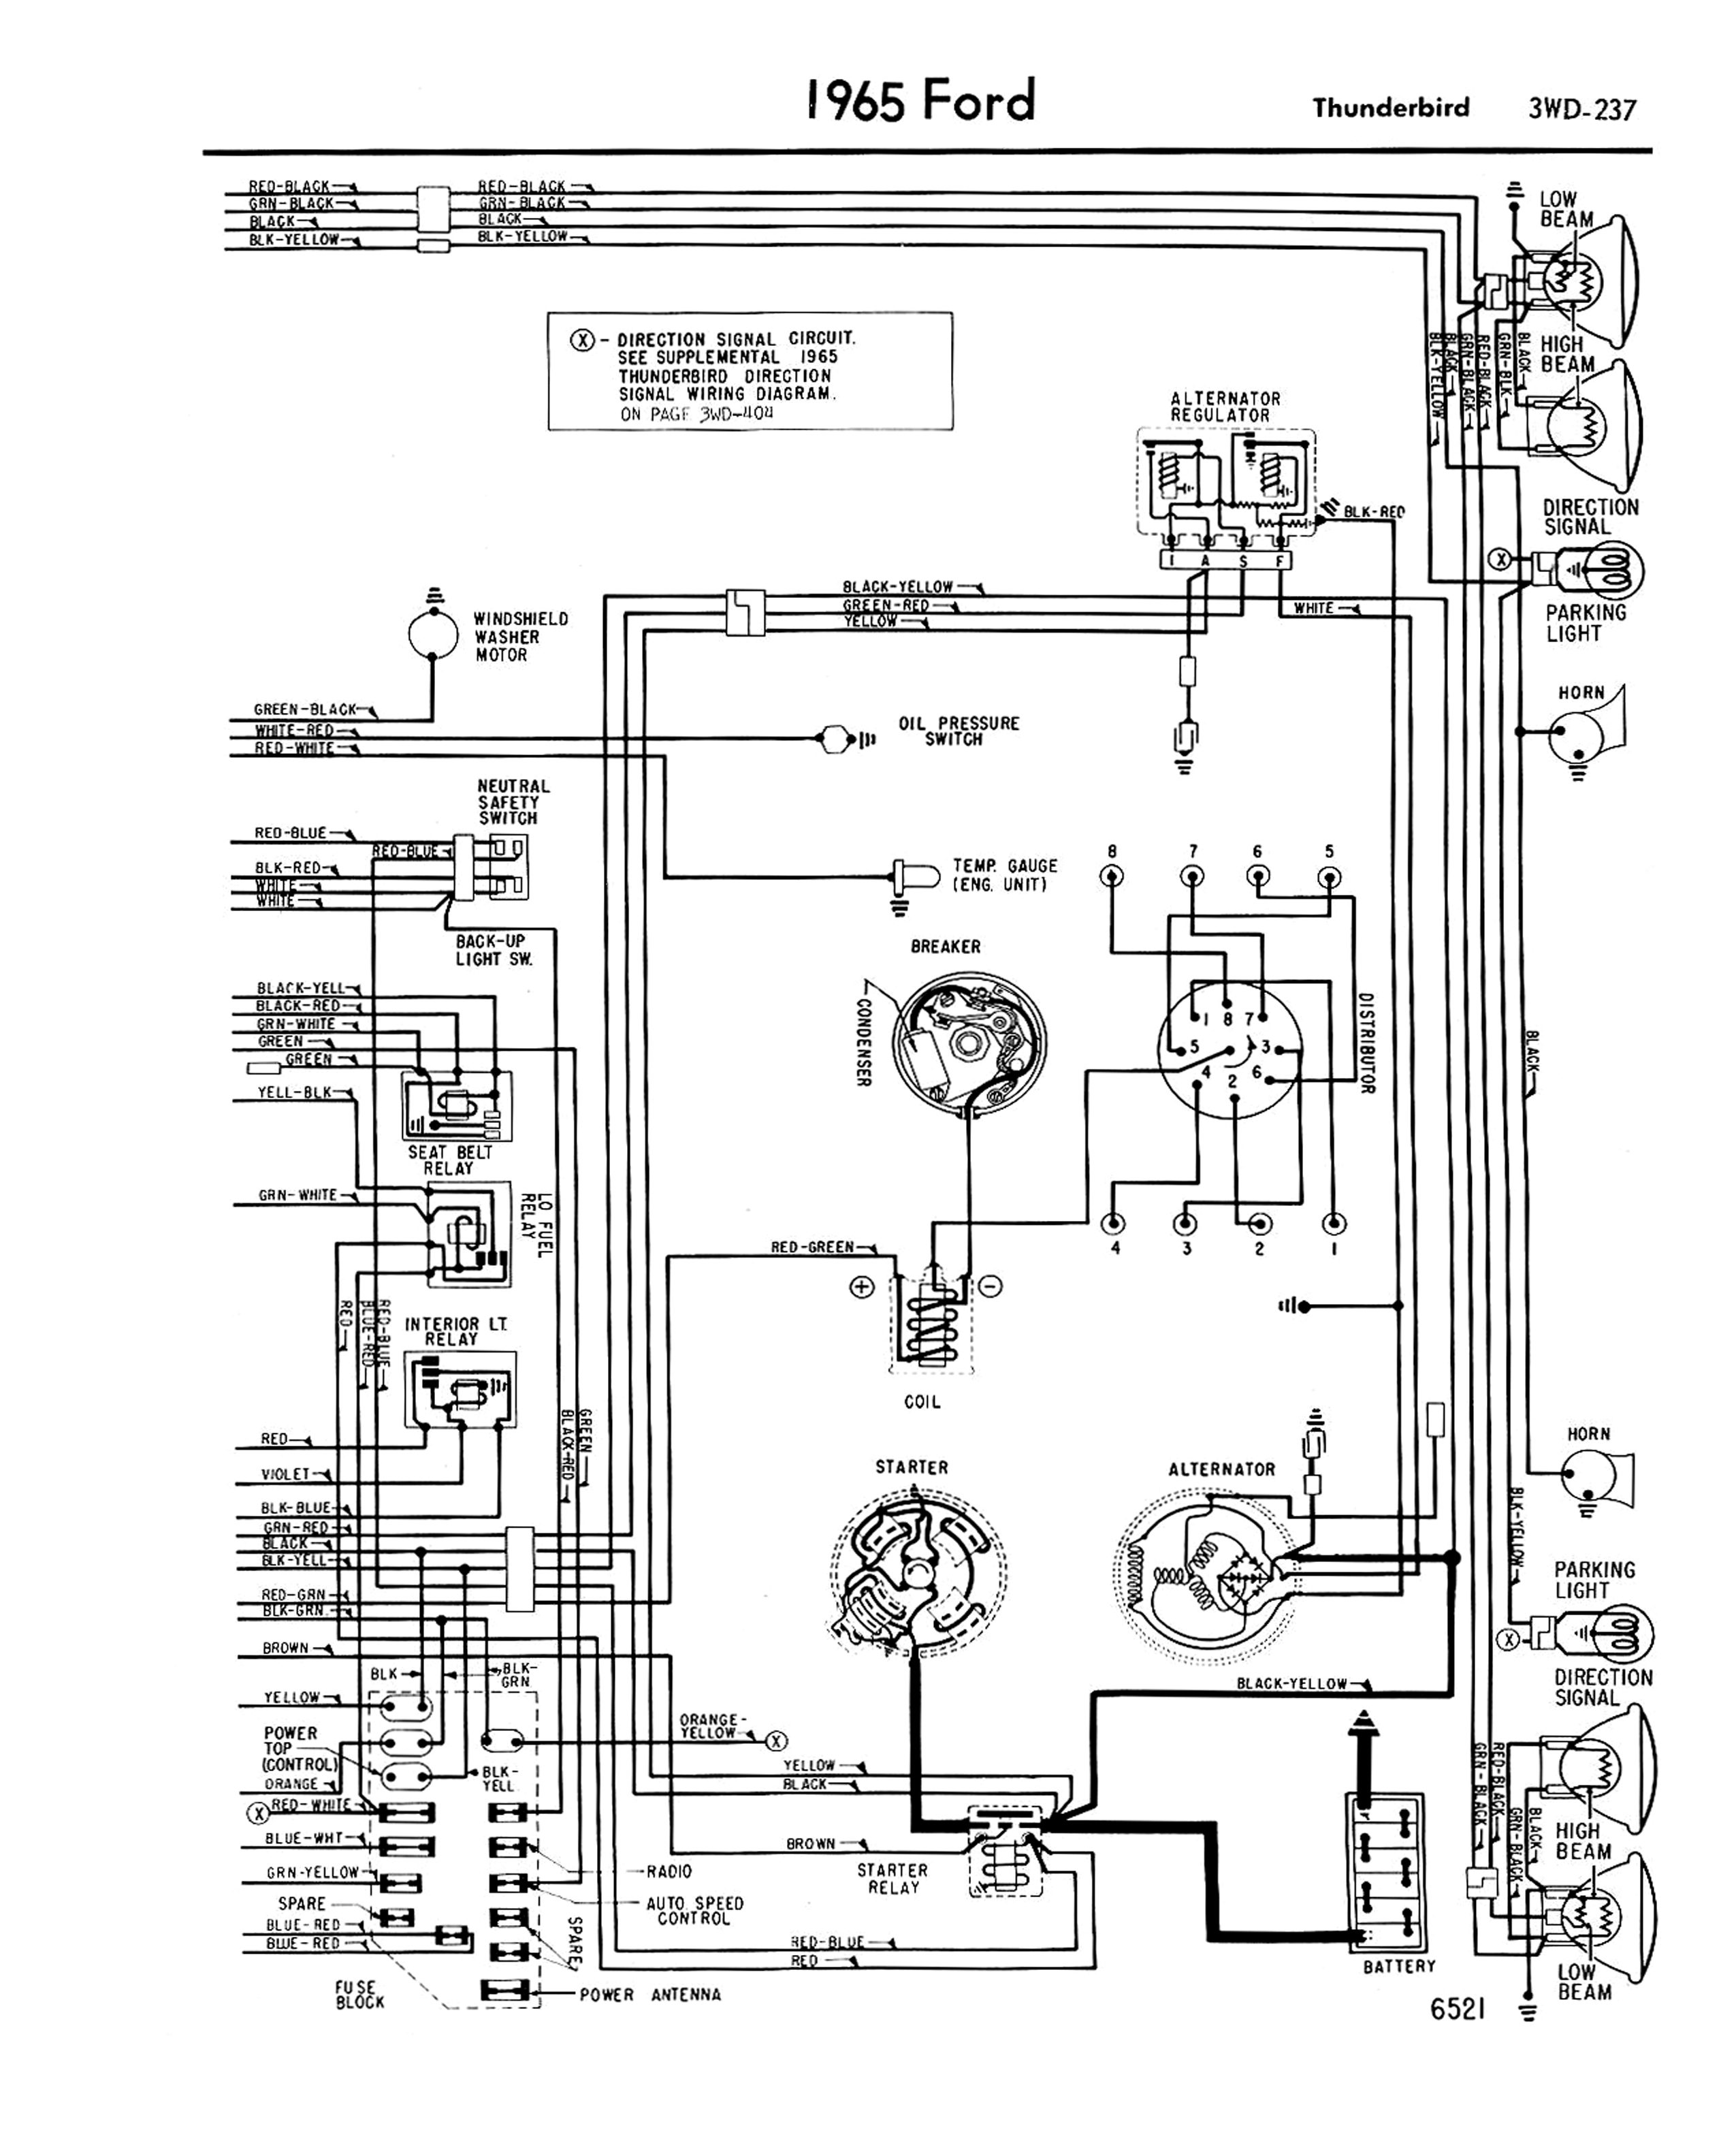 1965 Ford Thunderbird Wiring Diagram Guide And Troubleshooting Of 64 Mustang Turn Signal 1958 Third Level Rh 15 19 21 Jacobwinterstein Com Alternator